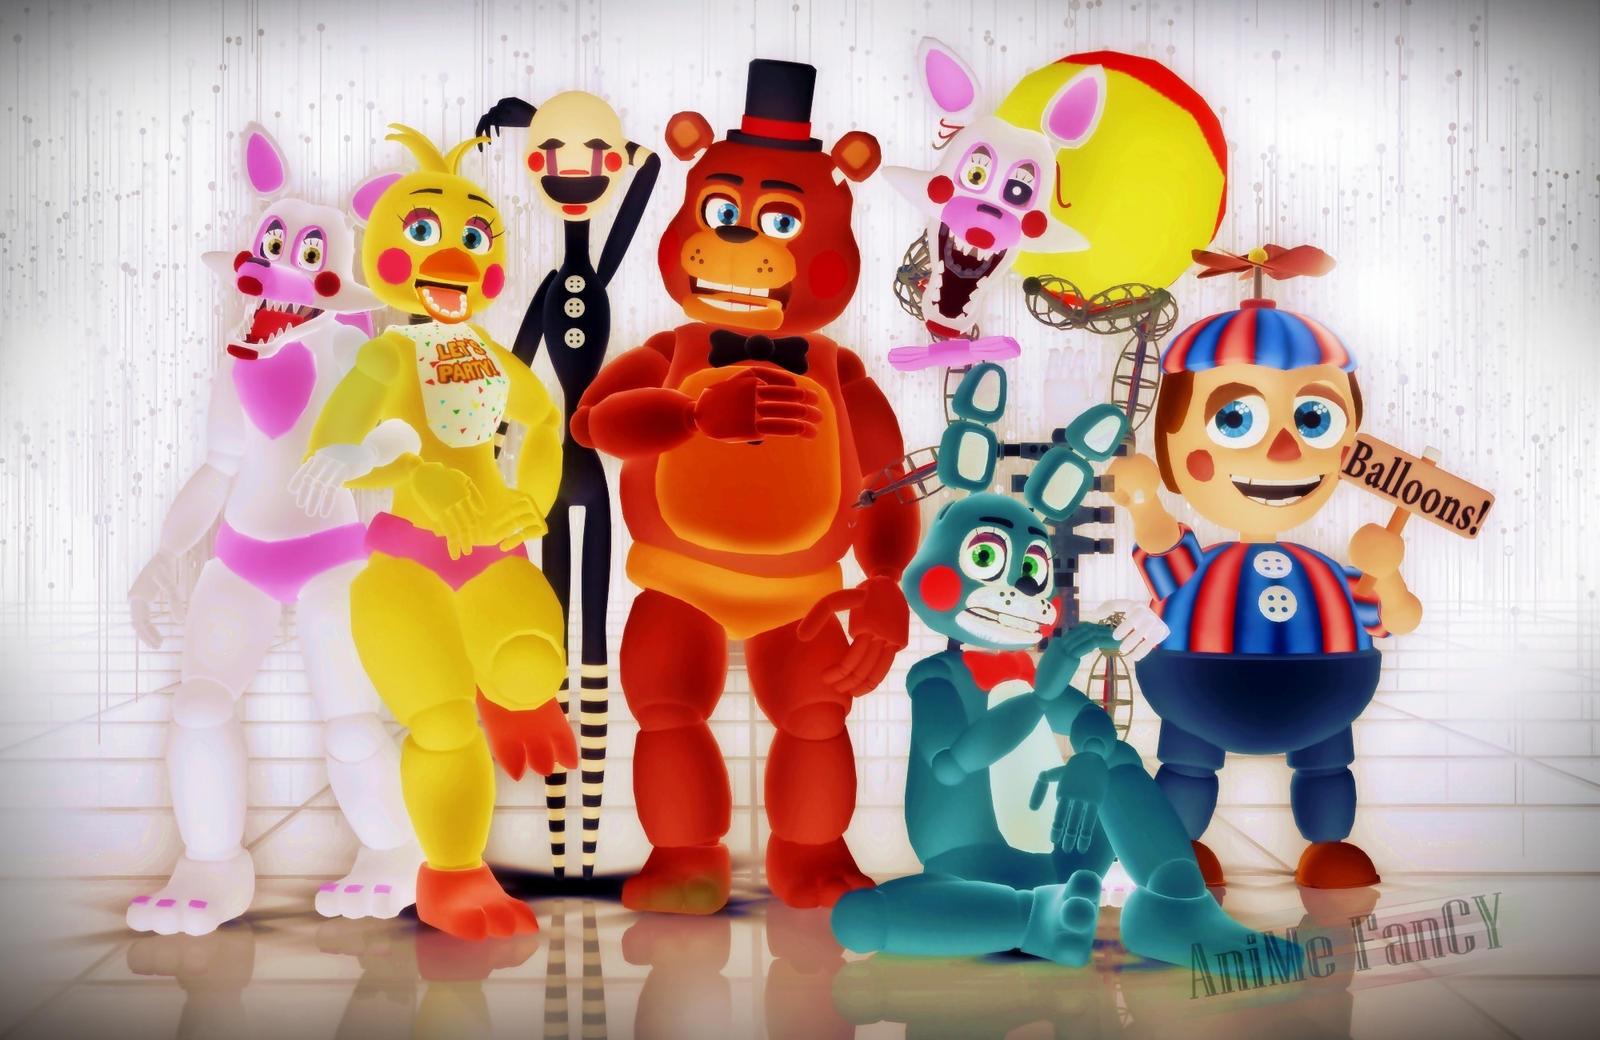 Five nights at mmd 2 by jakkaeront on deviantart